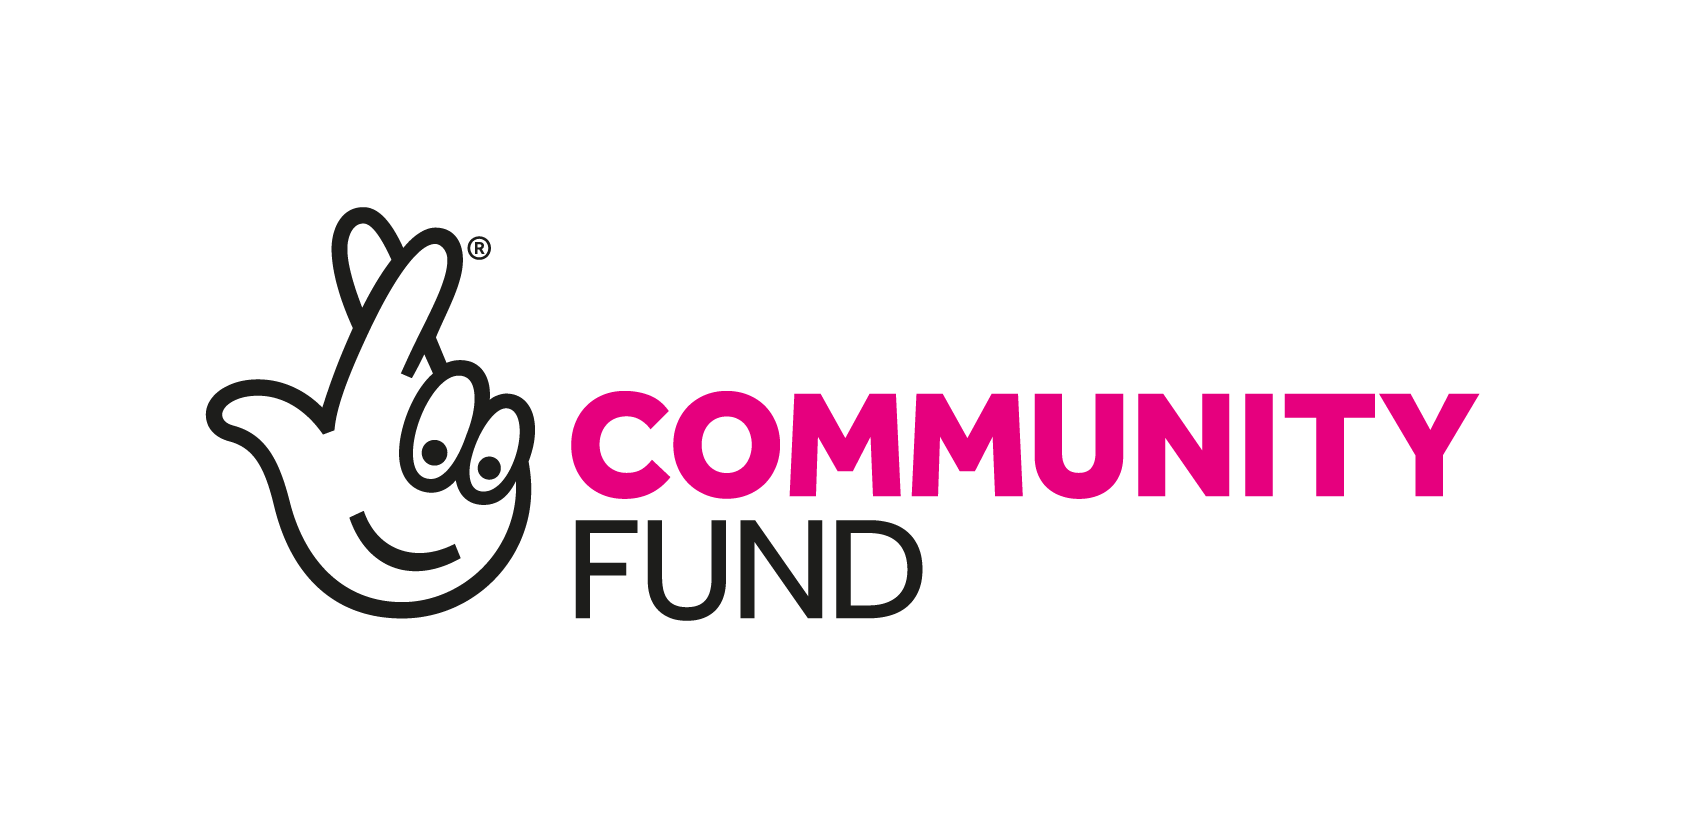 Applications Open For Charities To Access Coronavirus Community Support Fund